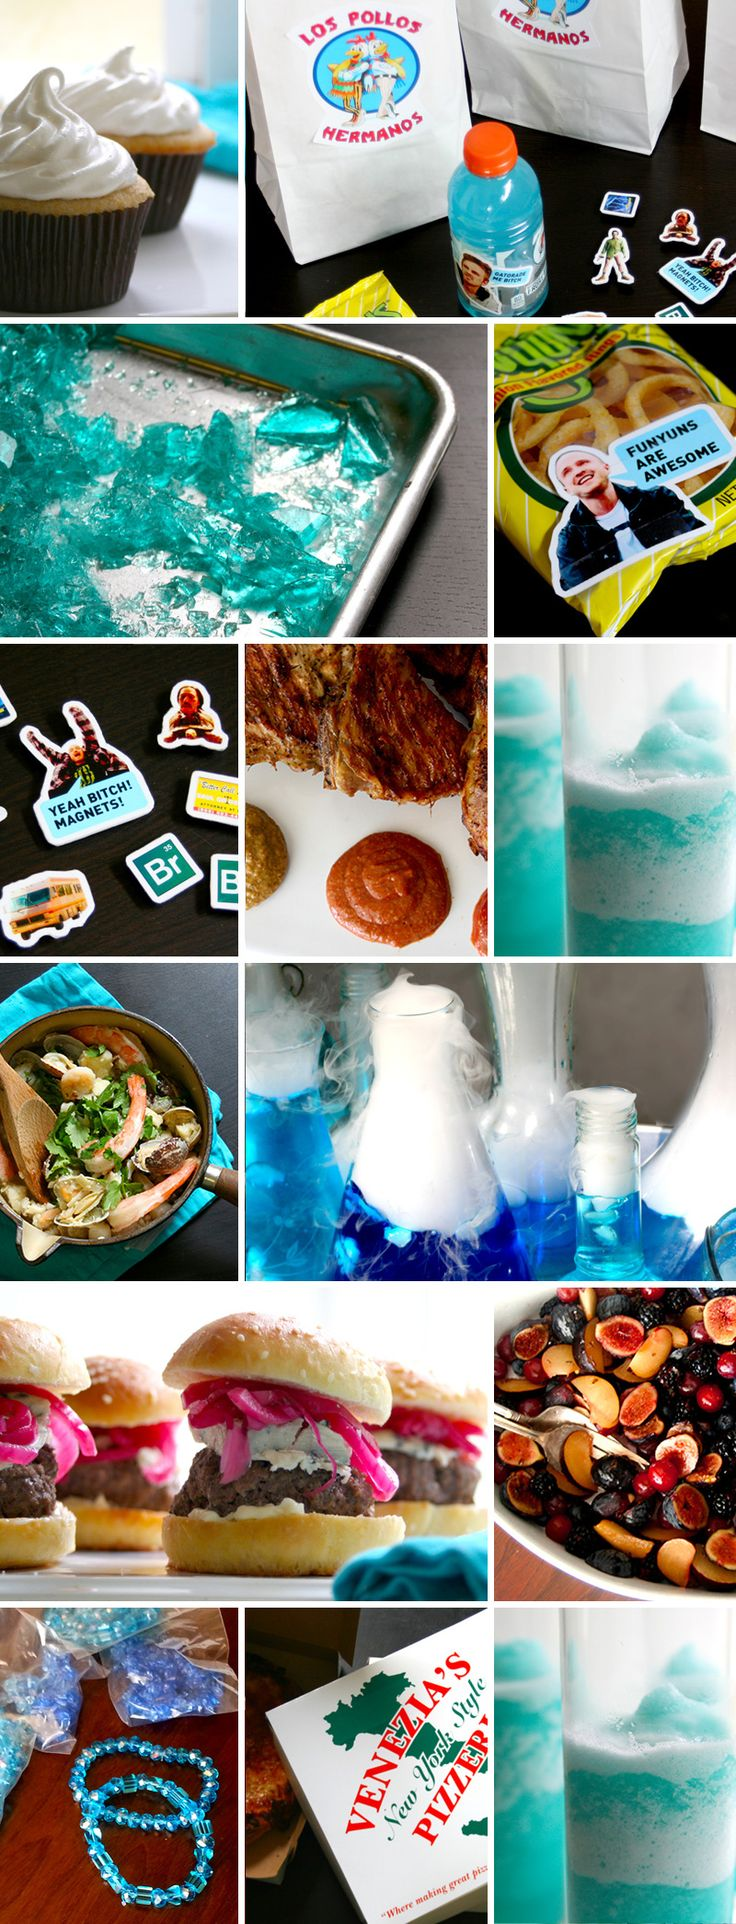 Breaking Bad Party Ideas and Menu